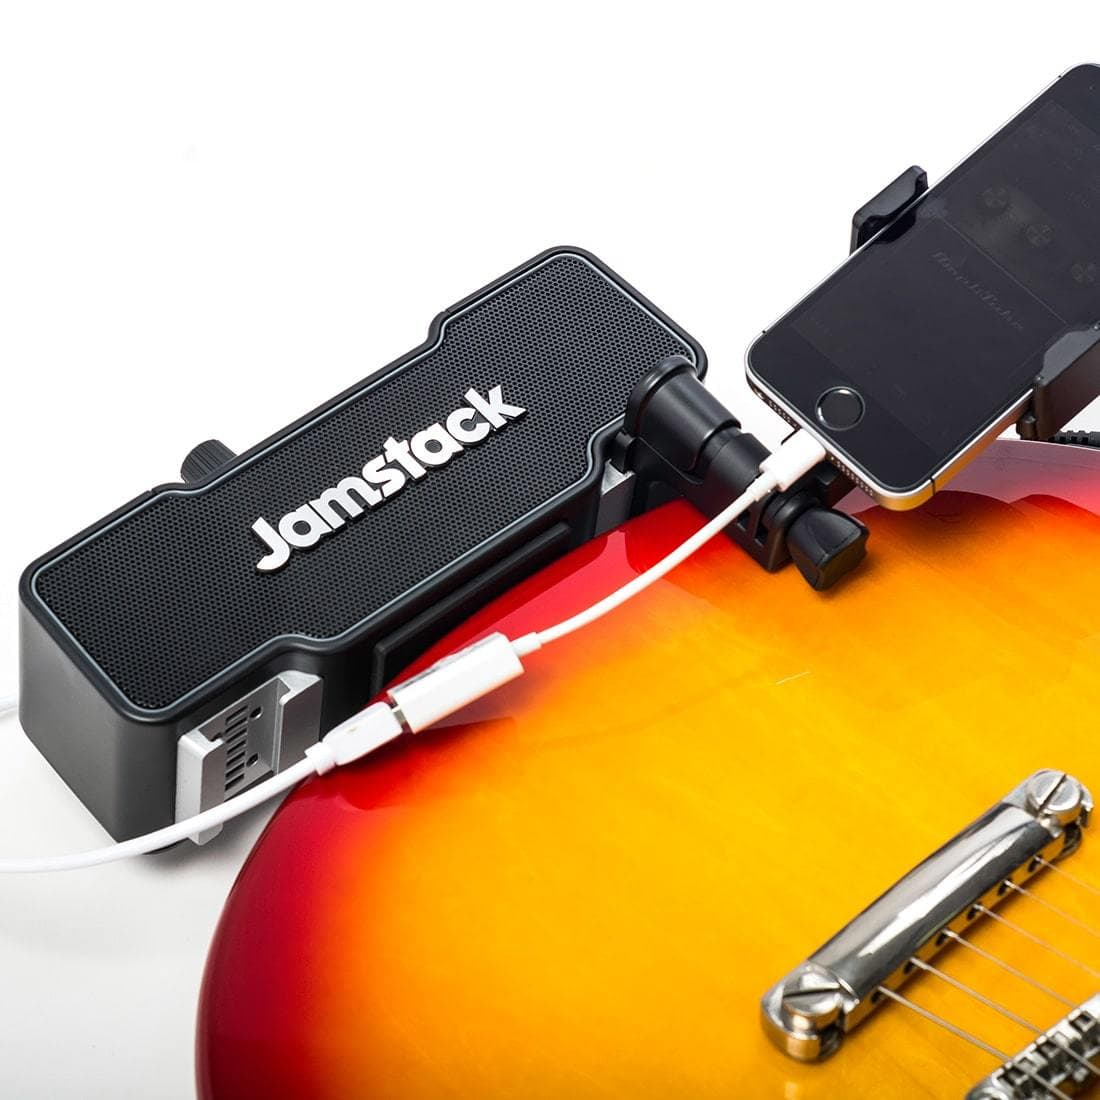 Jamstack speaker clings to the guitar.